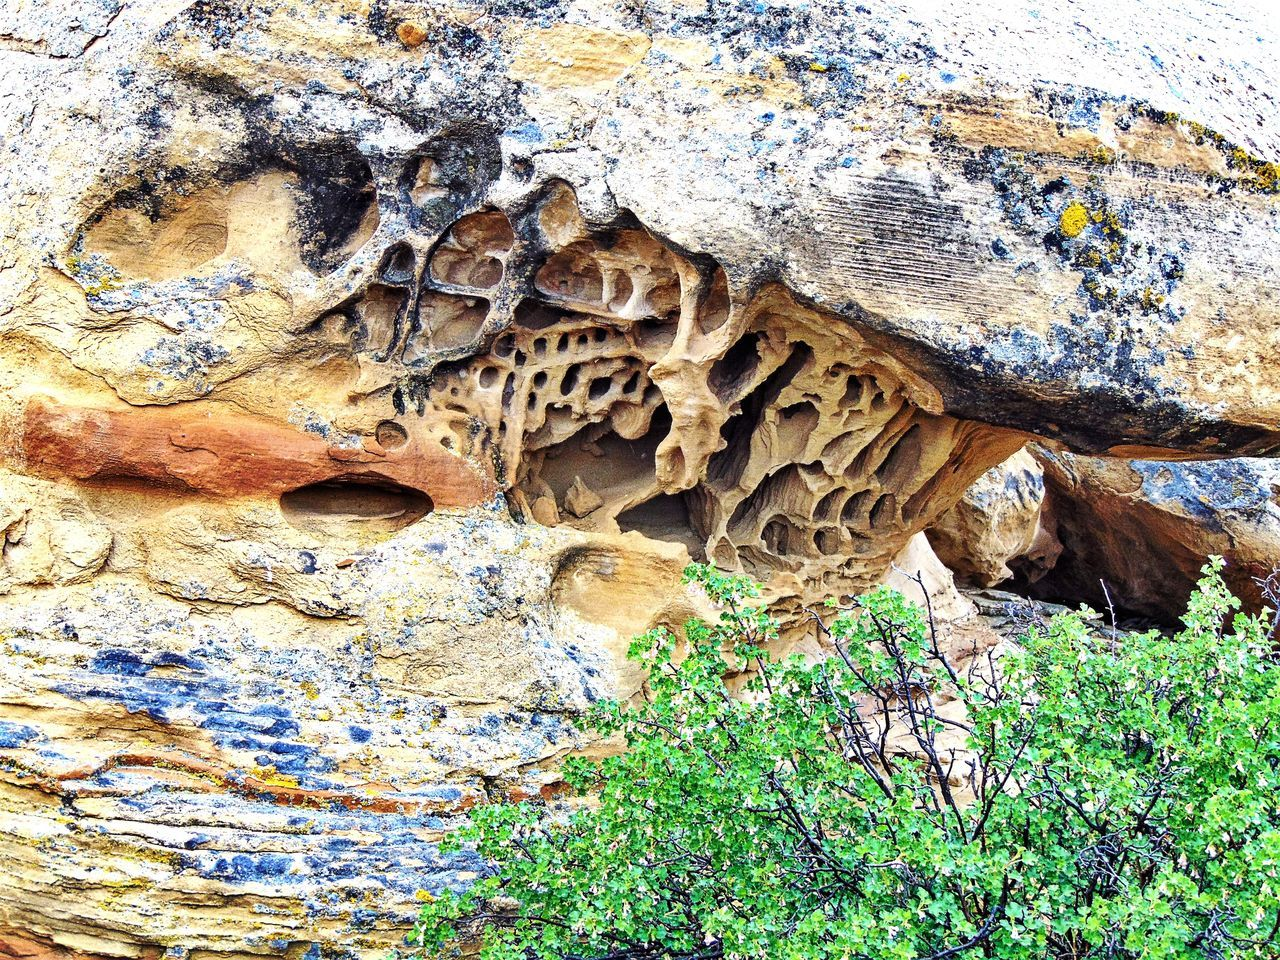 Plants Against Rock Formation